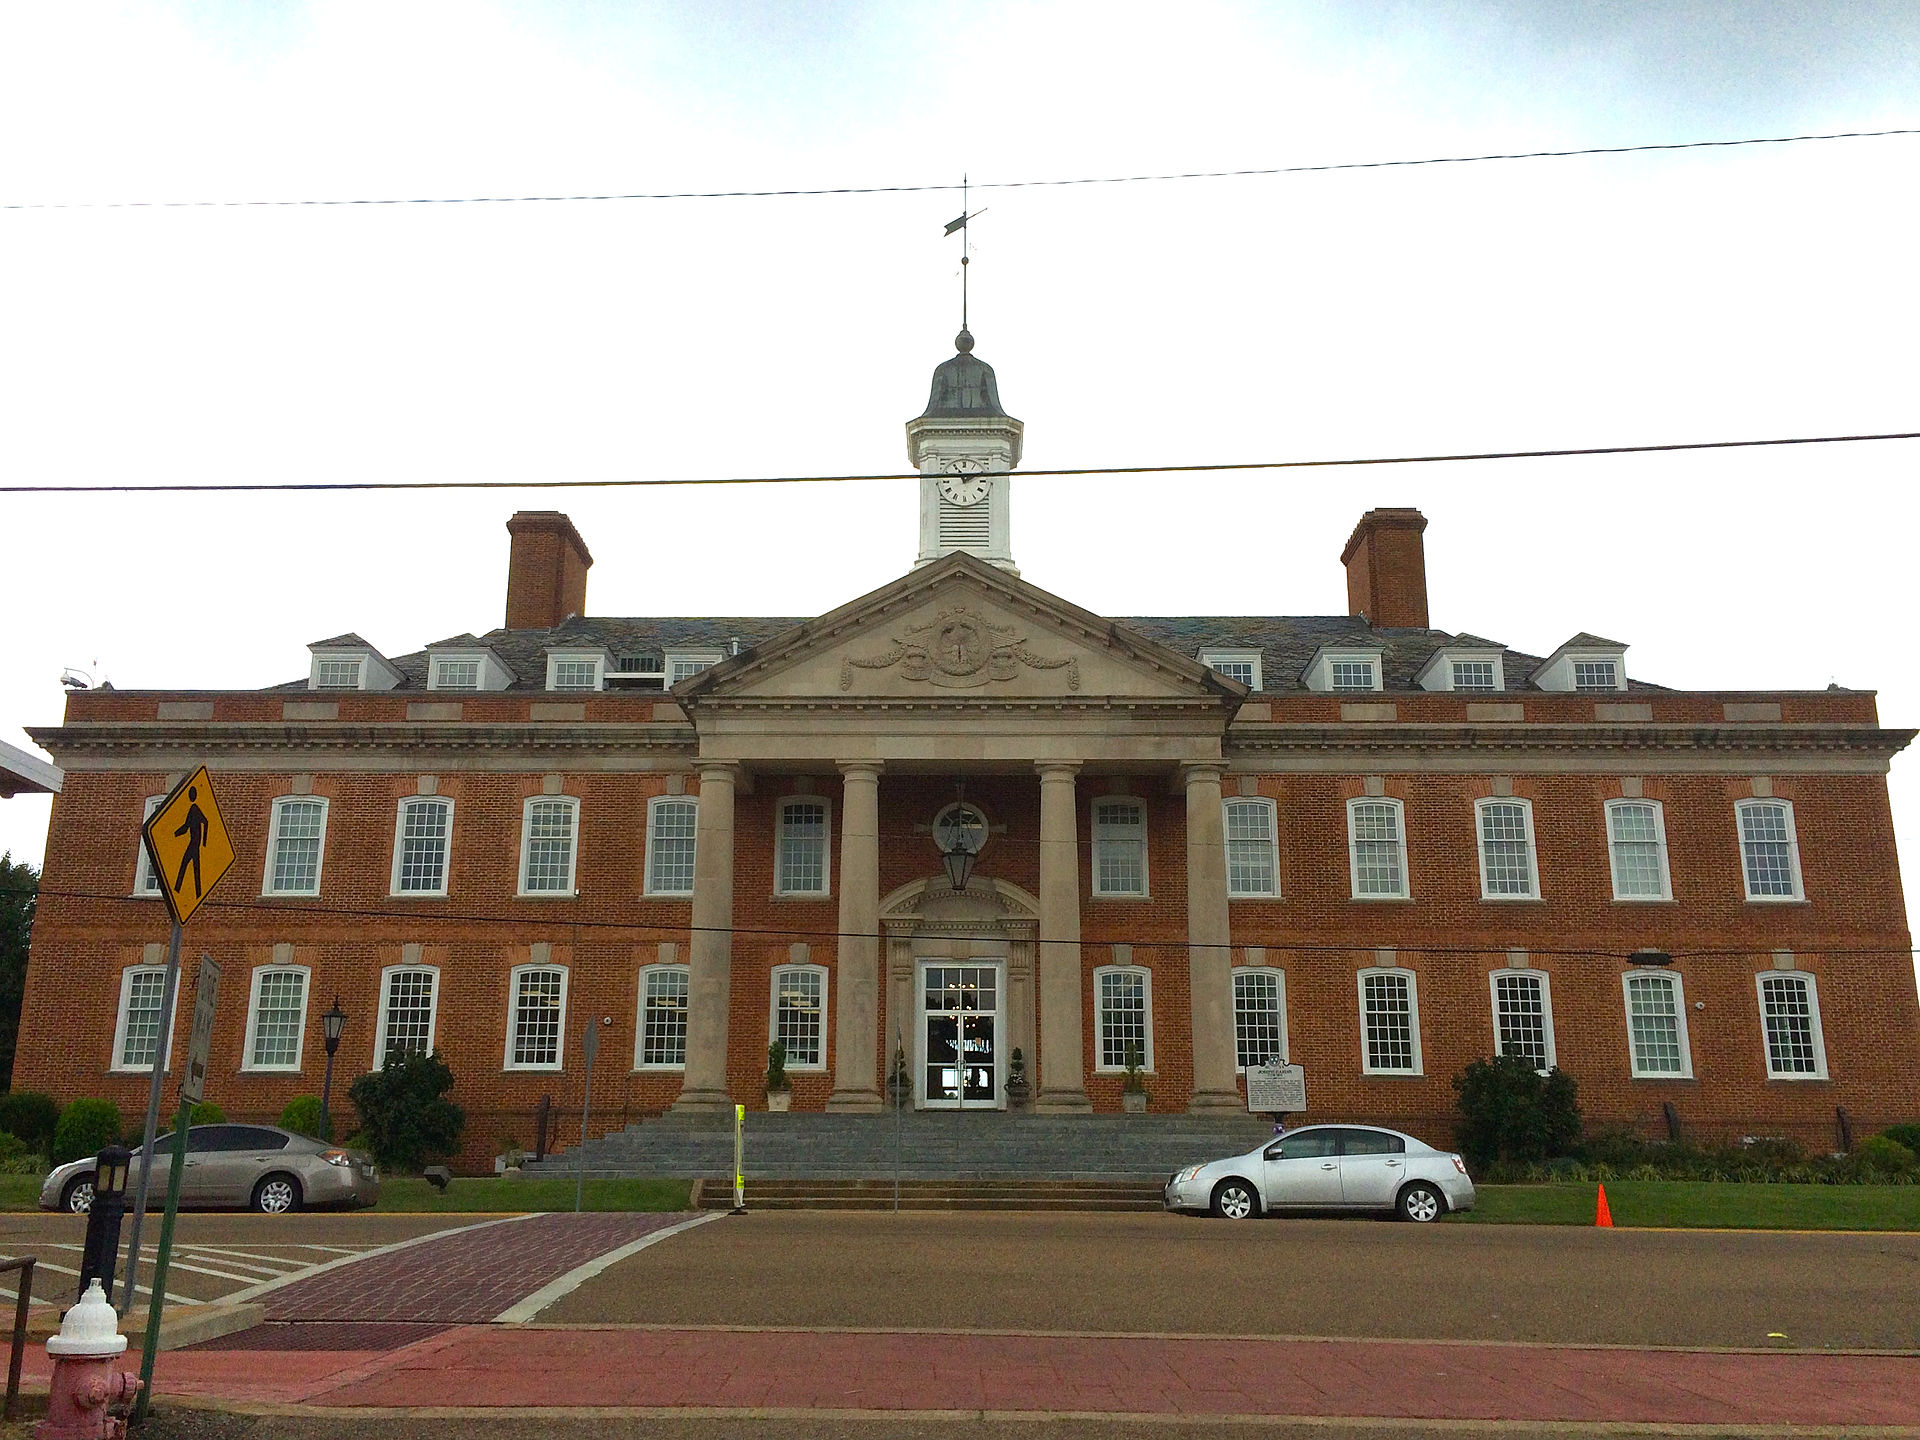 Hardin_County,_Tennessee_courthouse_in_Savannah,_Tennessee